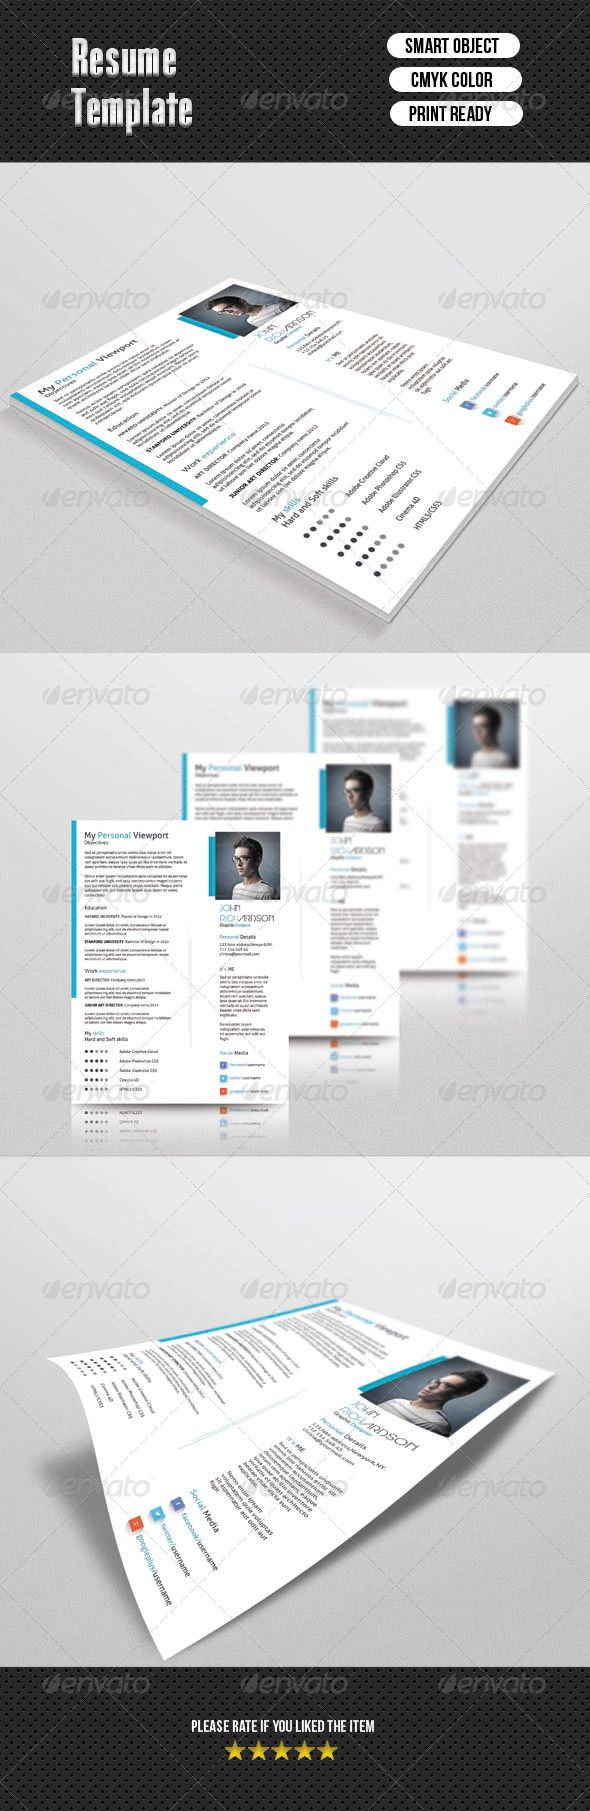 Cute 1 Year Experience Resume Format For Java Big 1.5 Binder Spine Template Square 100 Template 15 Year Old Resume Sample Old 18 Month Calendar Template Black2 Inch Heart Template Resume: A Collection Of Design Ideas To Try | Shops, Professional ..